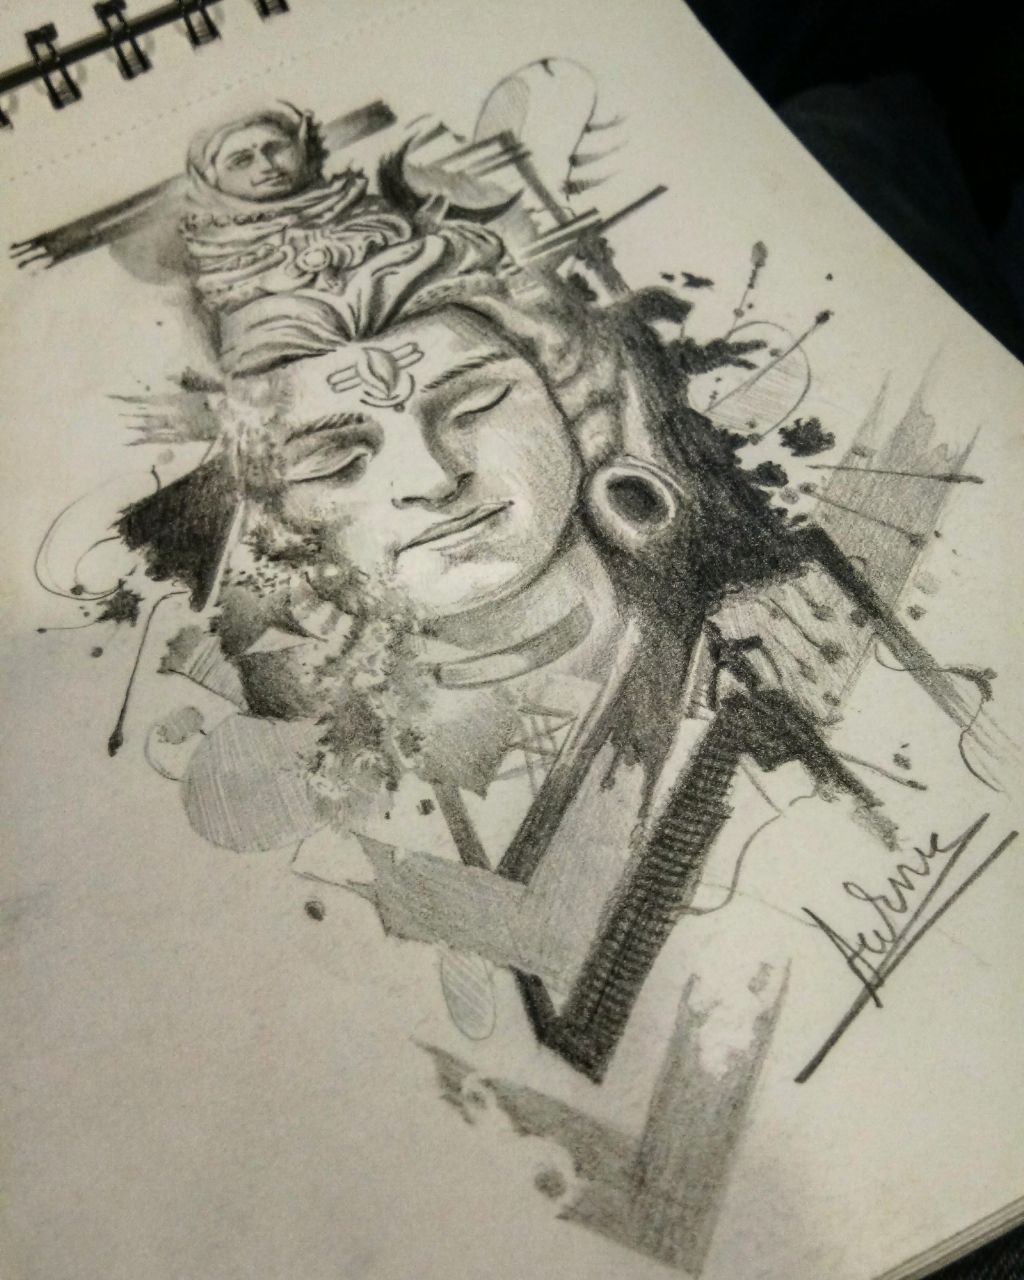 Sketch Of Lord Shiva Tattoo It As Rough Sket Crazy Ink Tattoo